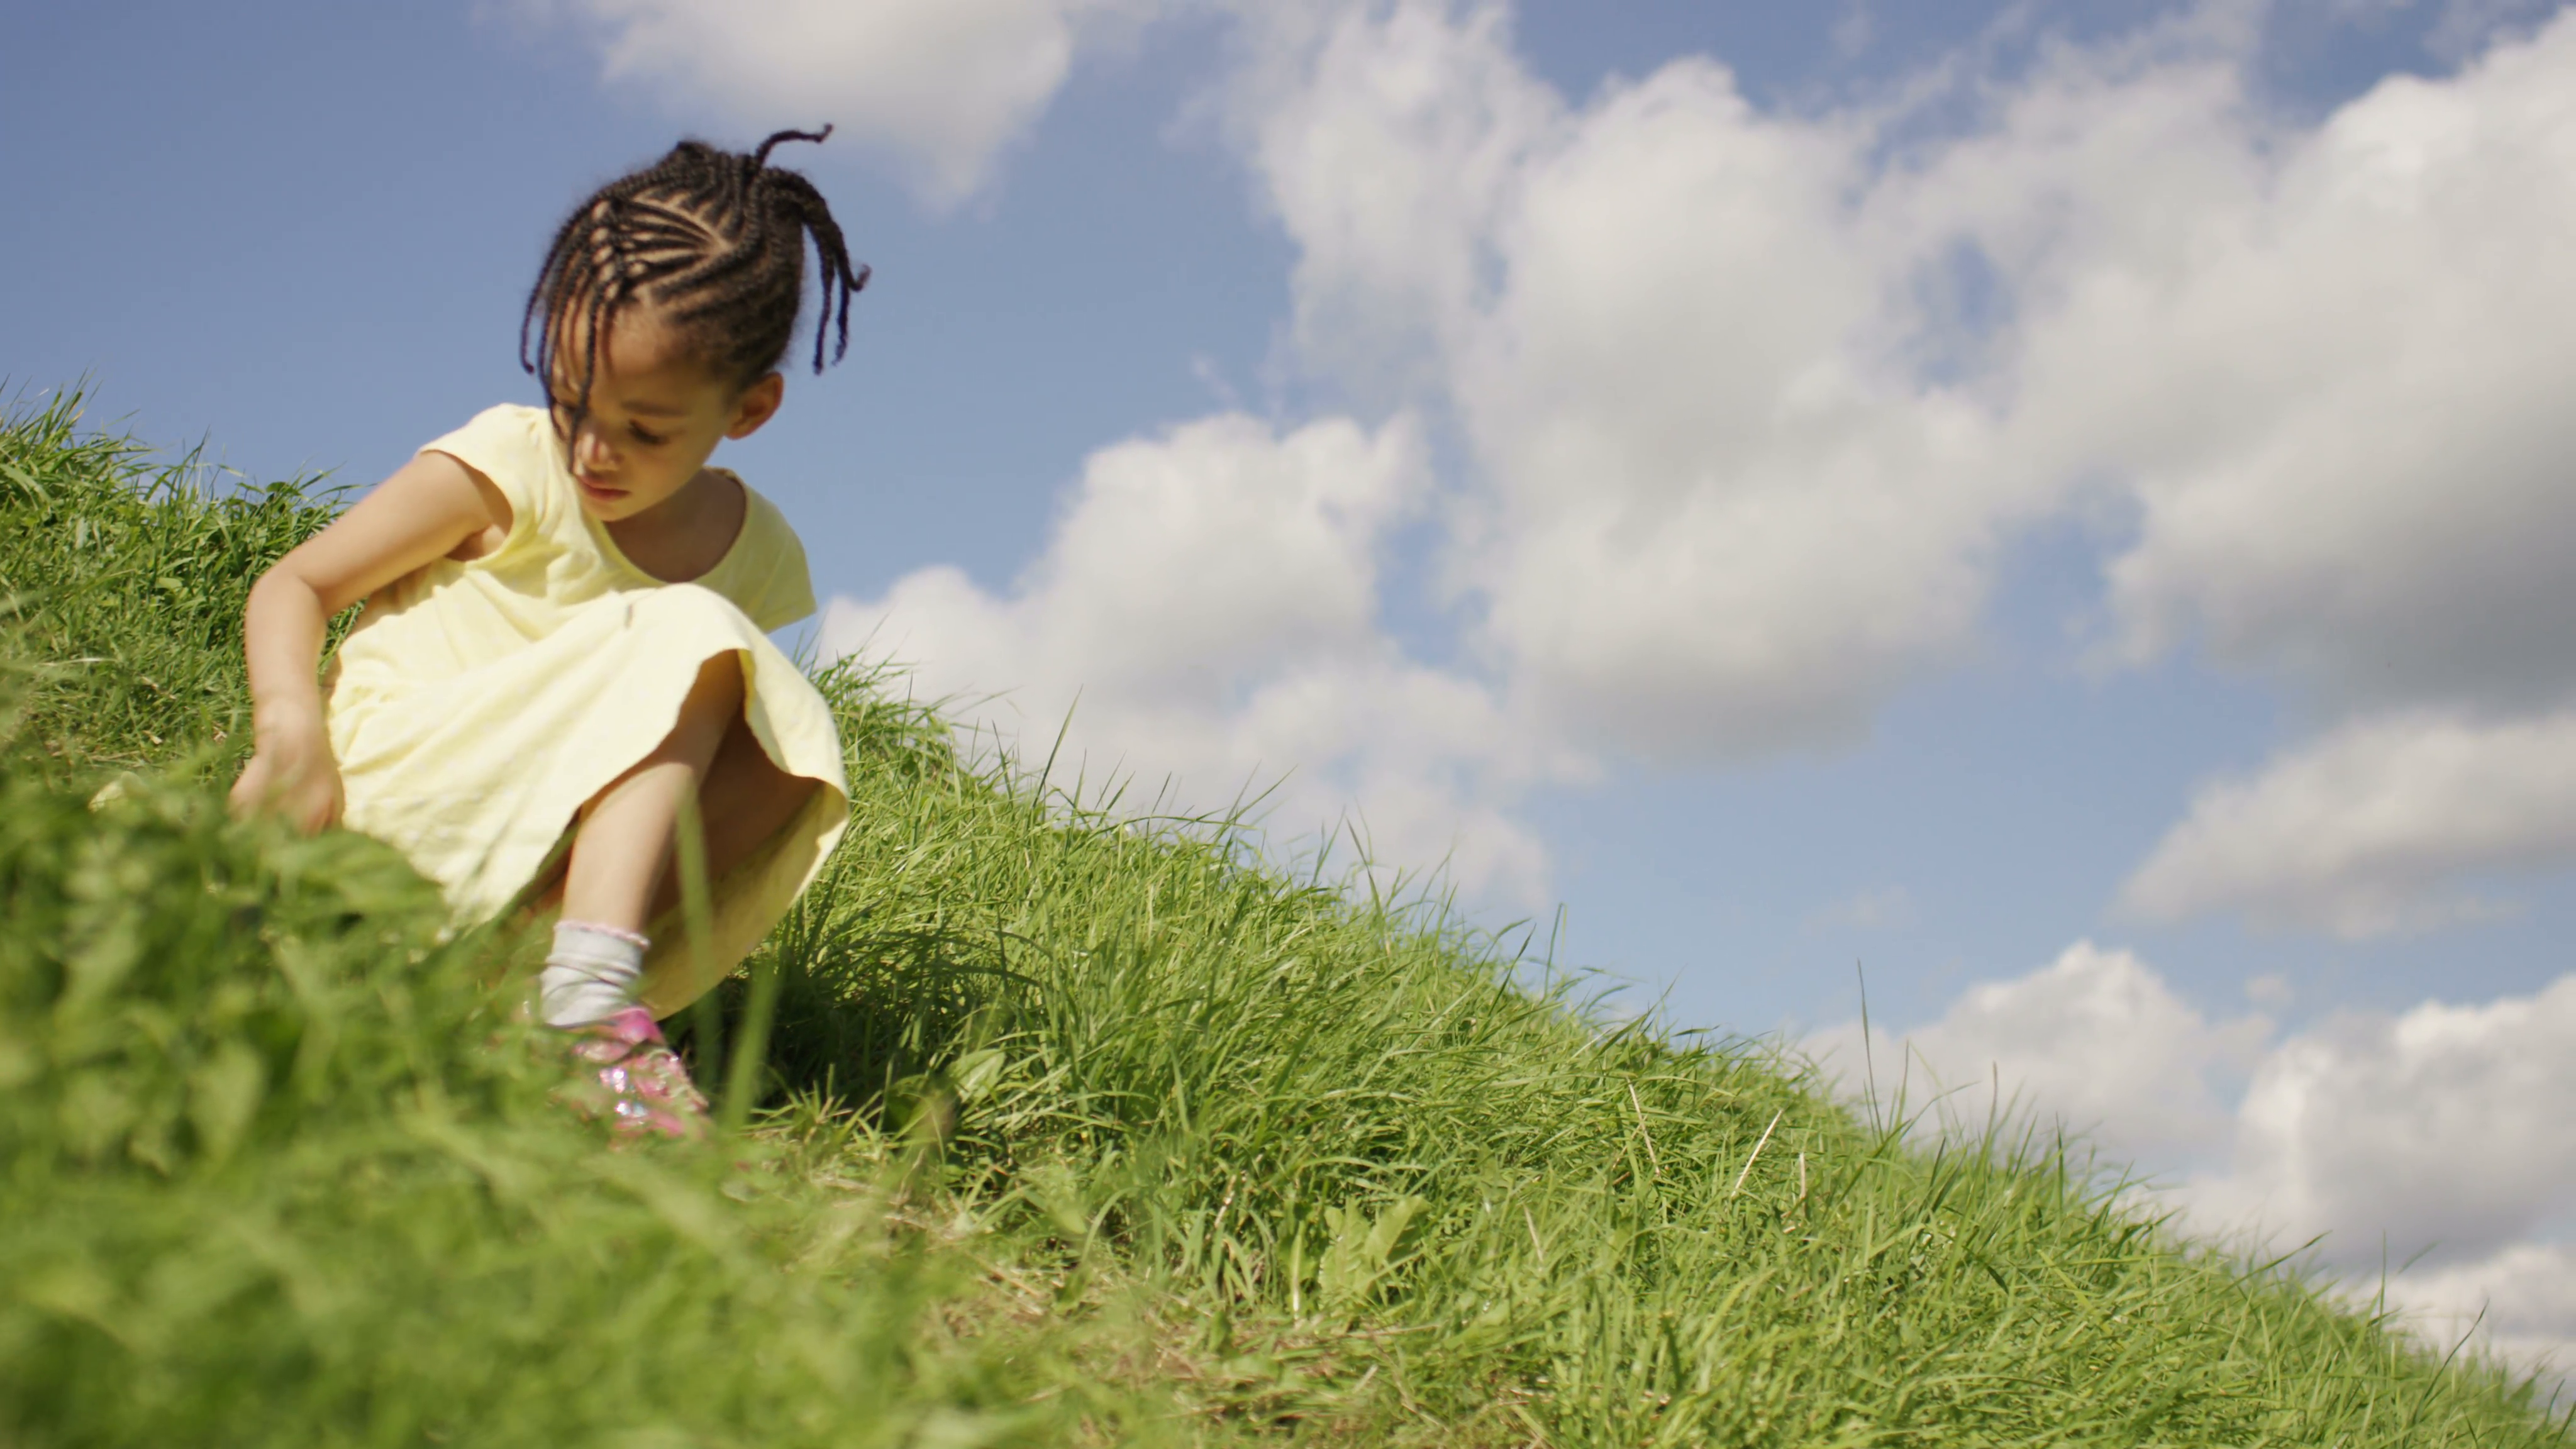 4K Little girl on a hill on a bright sunny day, in slow motion, shot on Red  Epic Dragon Stock Video Footage - VideoBlocks - Bright Sunny Day PNG